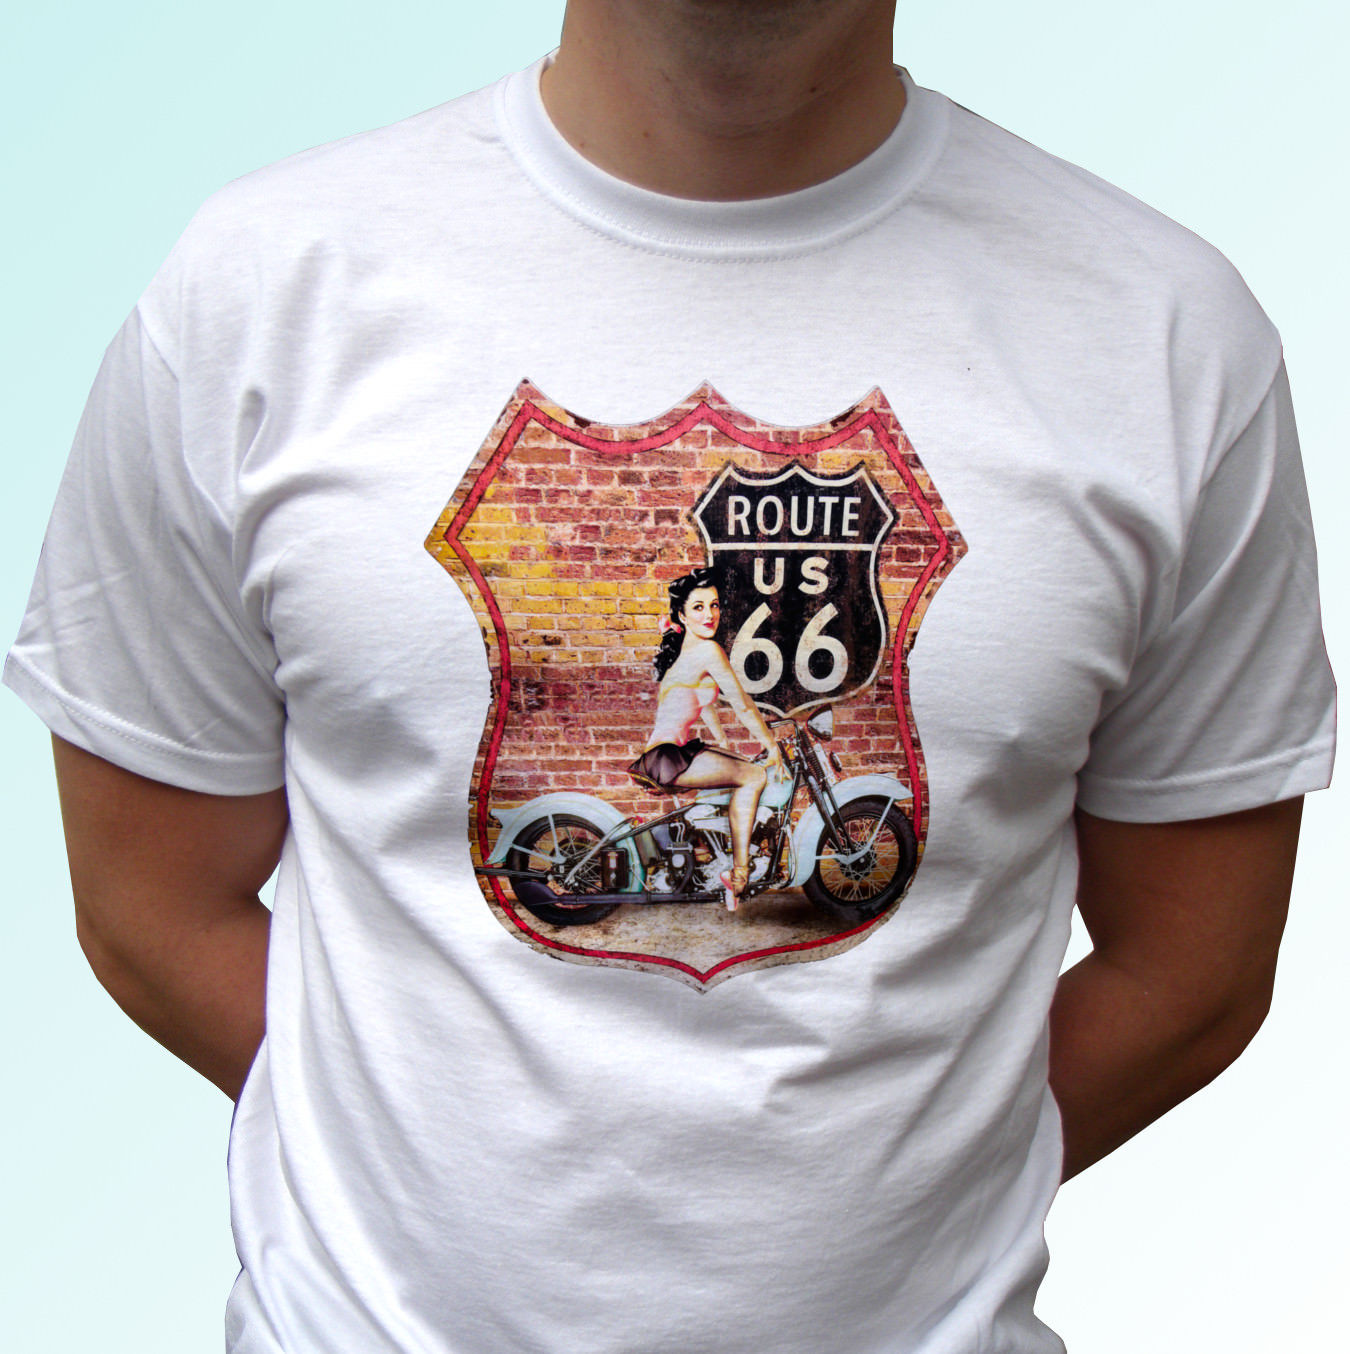 <font><b>Route</b></font> <font><b>66</b></font> white <font><b>t</b></font> <font><b>shirt</b></font> top USA biker design 2 - mens womens kids & baby image